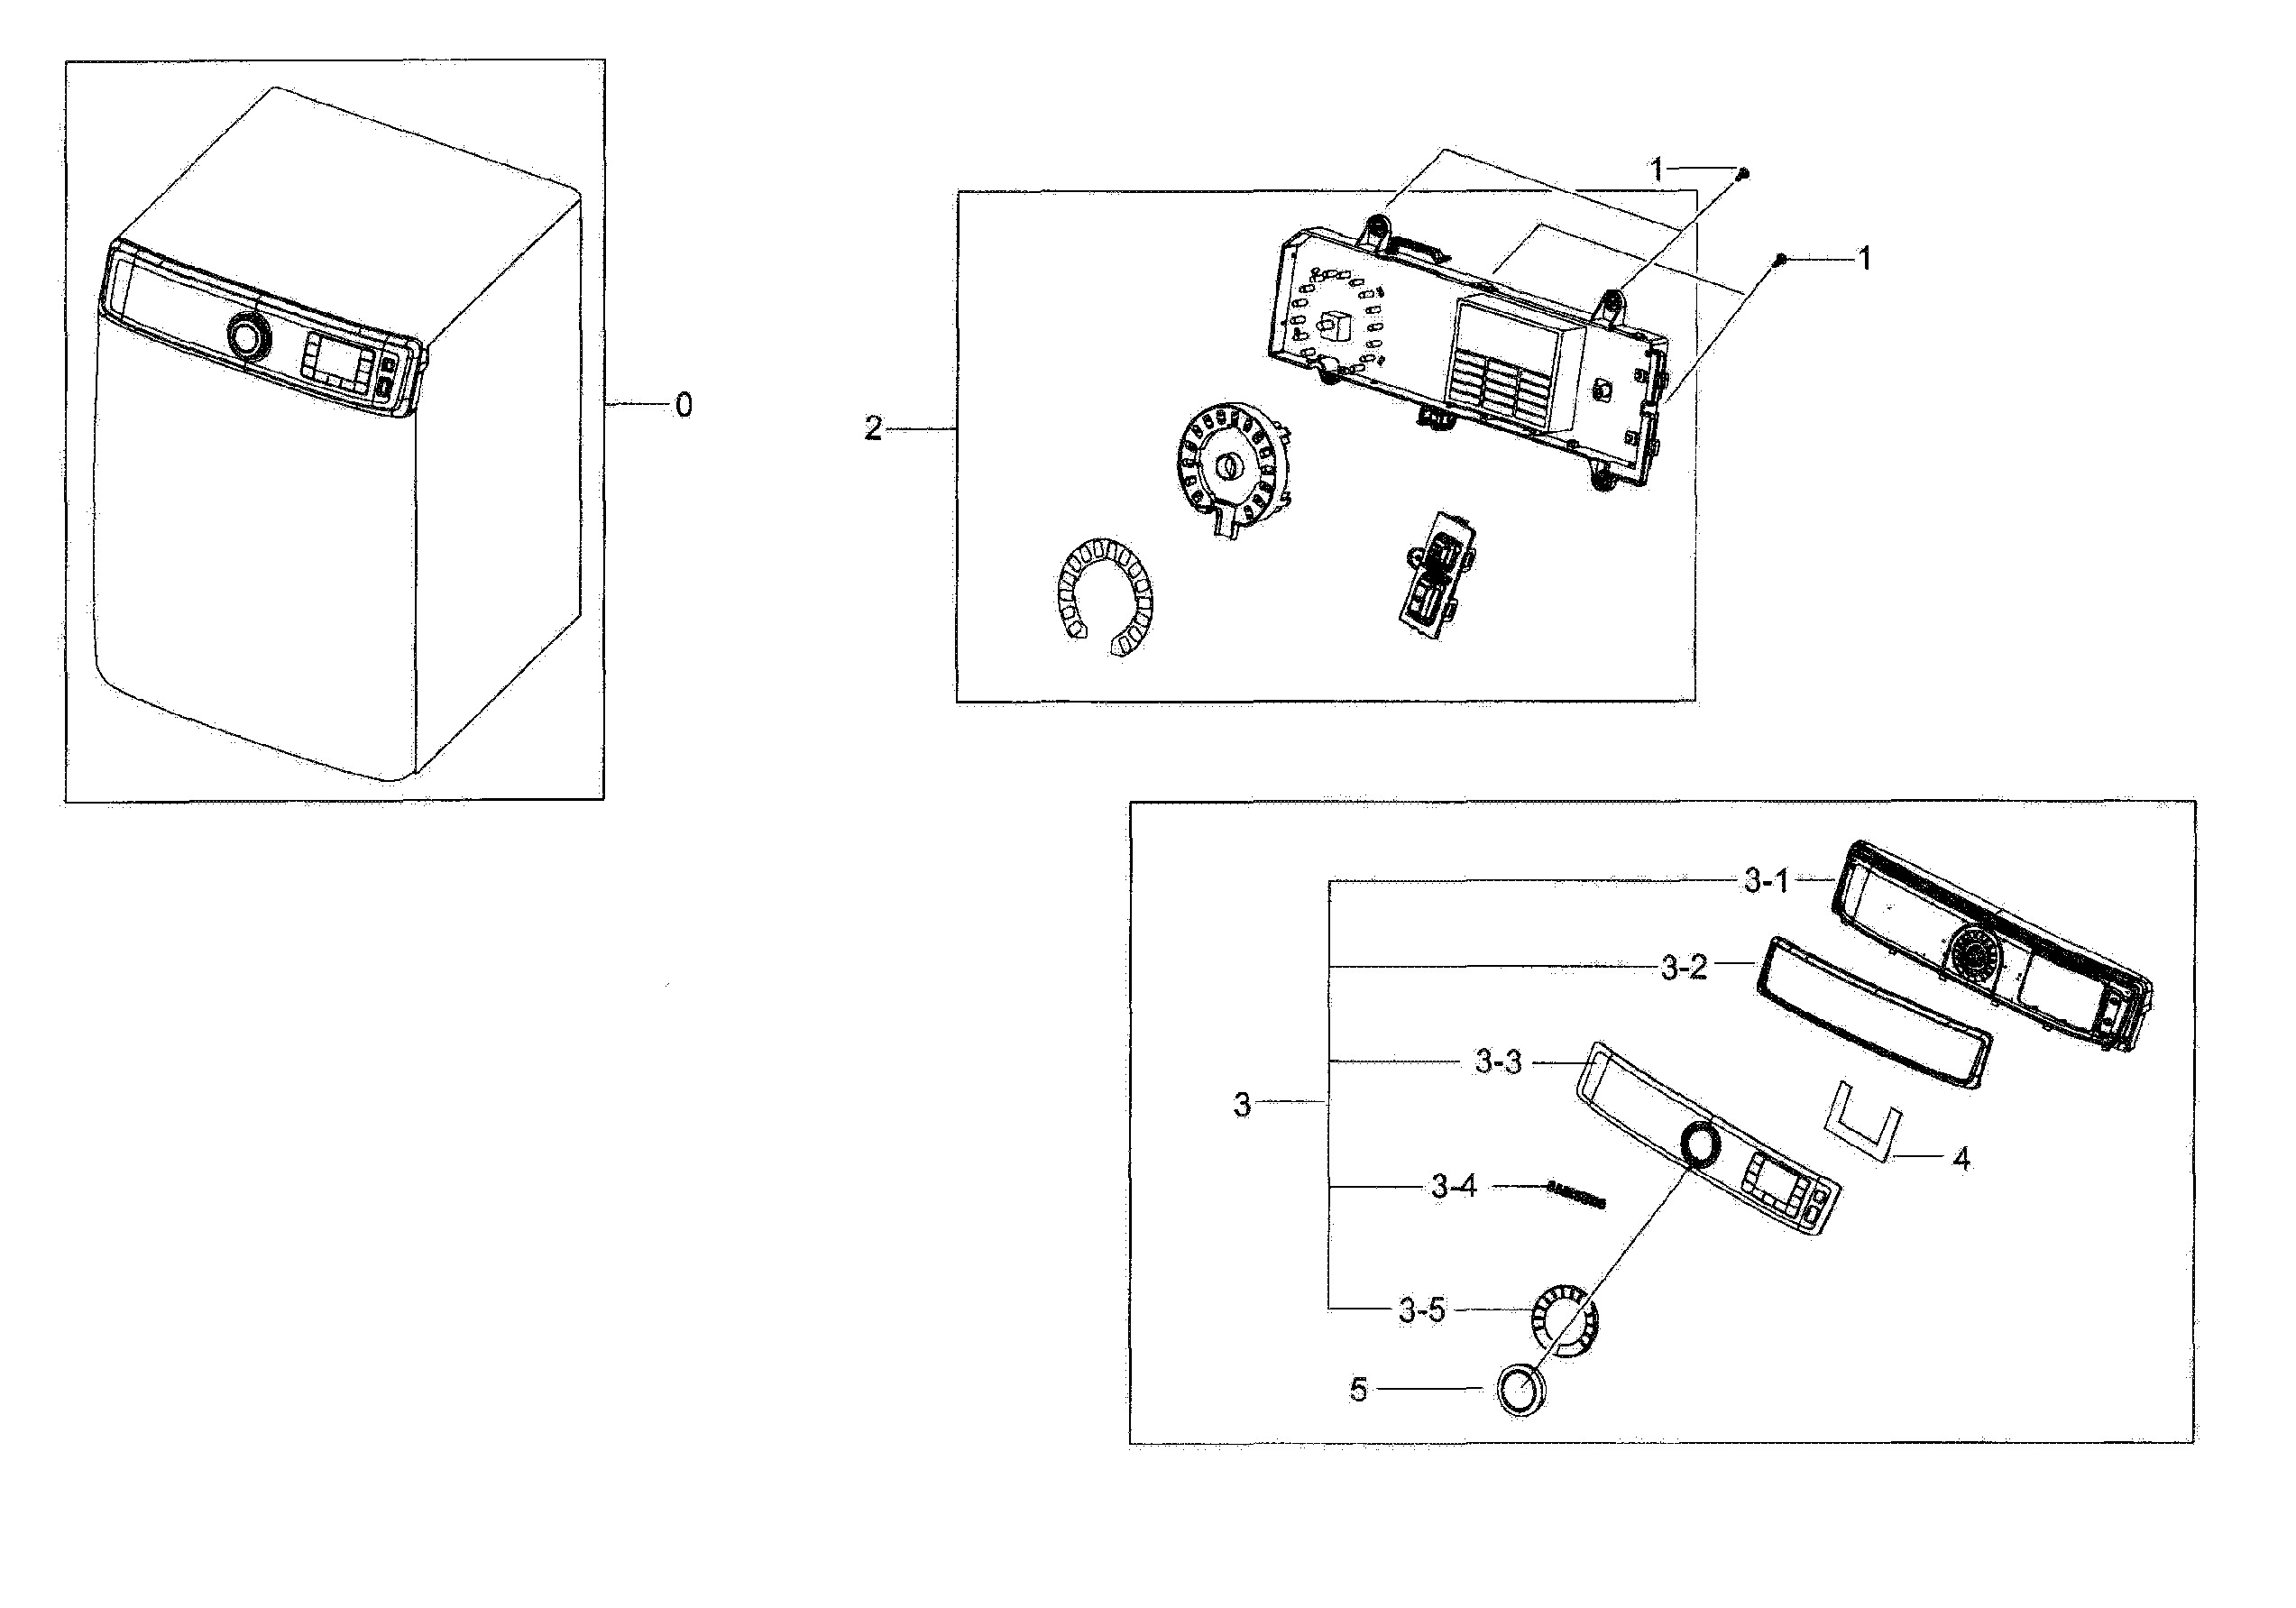 dyson animal parts diagram samsung model dv56h9100eg a2